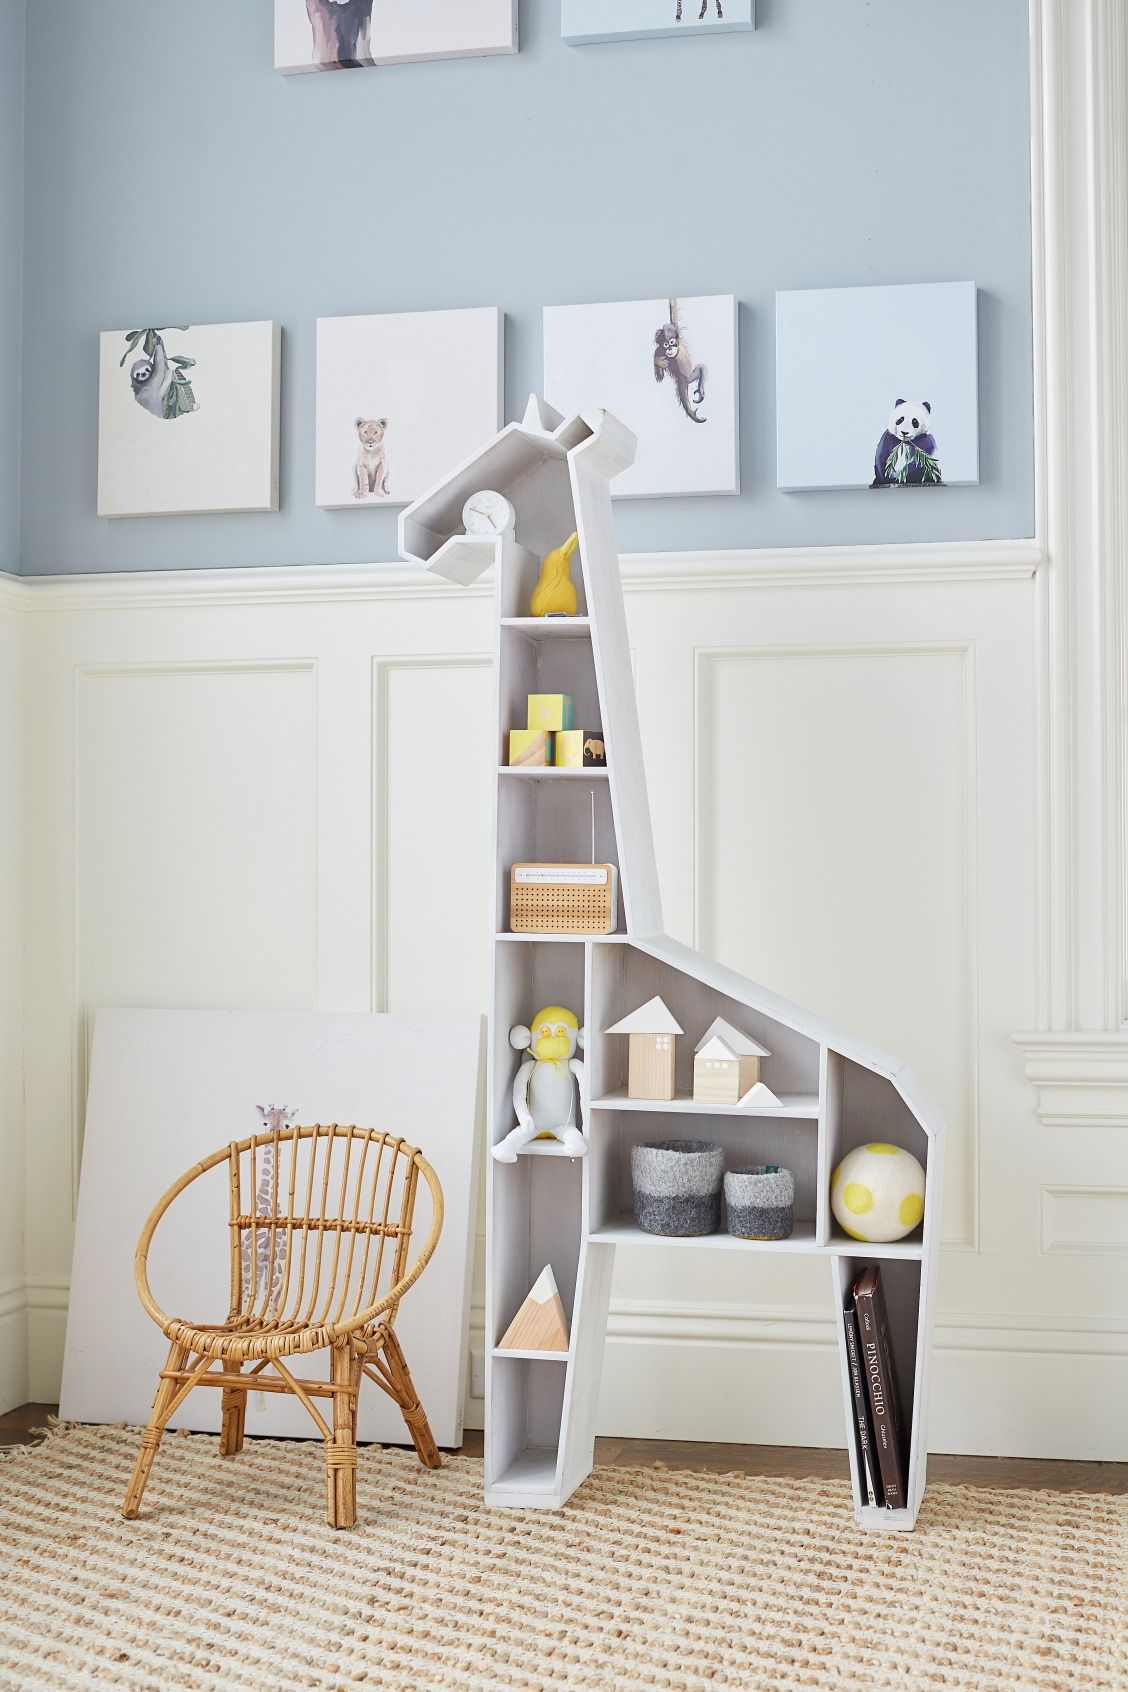 giraffe shelf gender neutral nursery ideas pinterest nursery